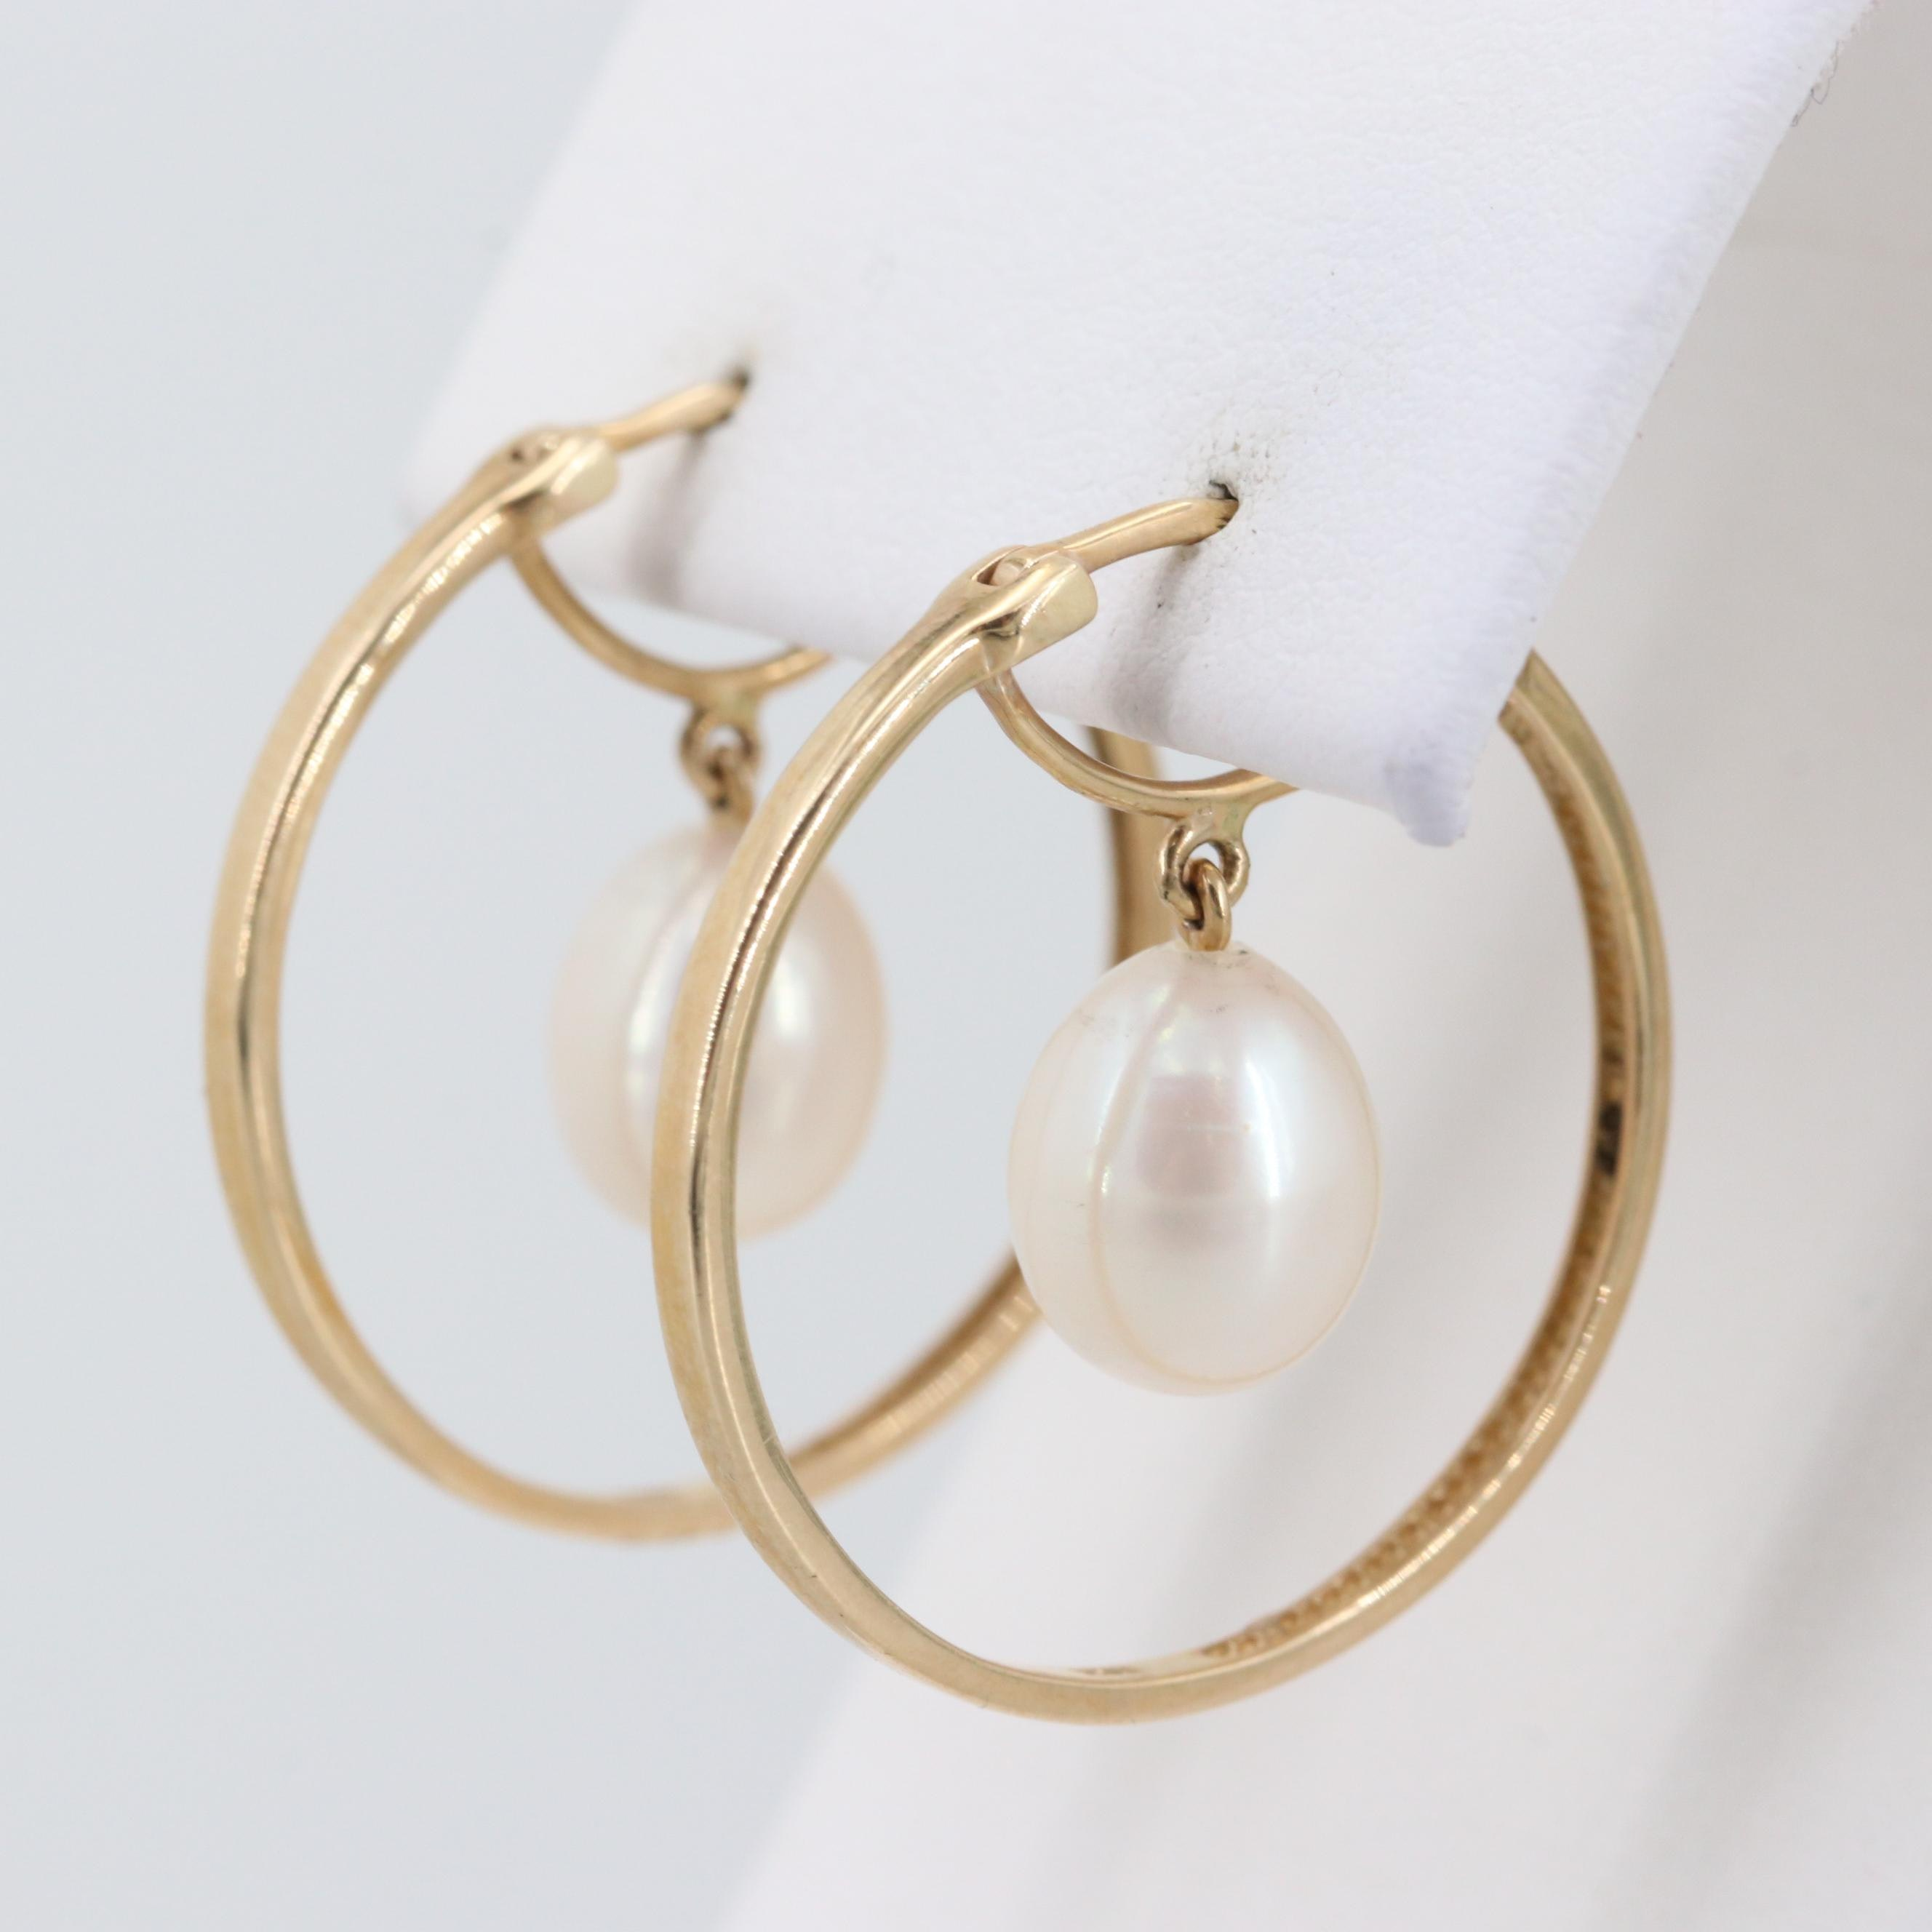 10 Yellow Gold Cultured Pearl Earrings